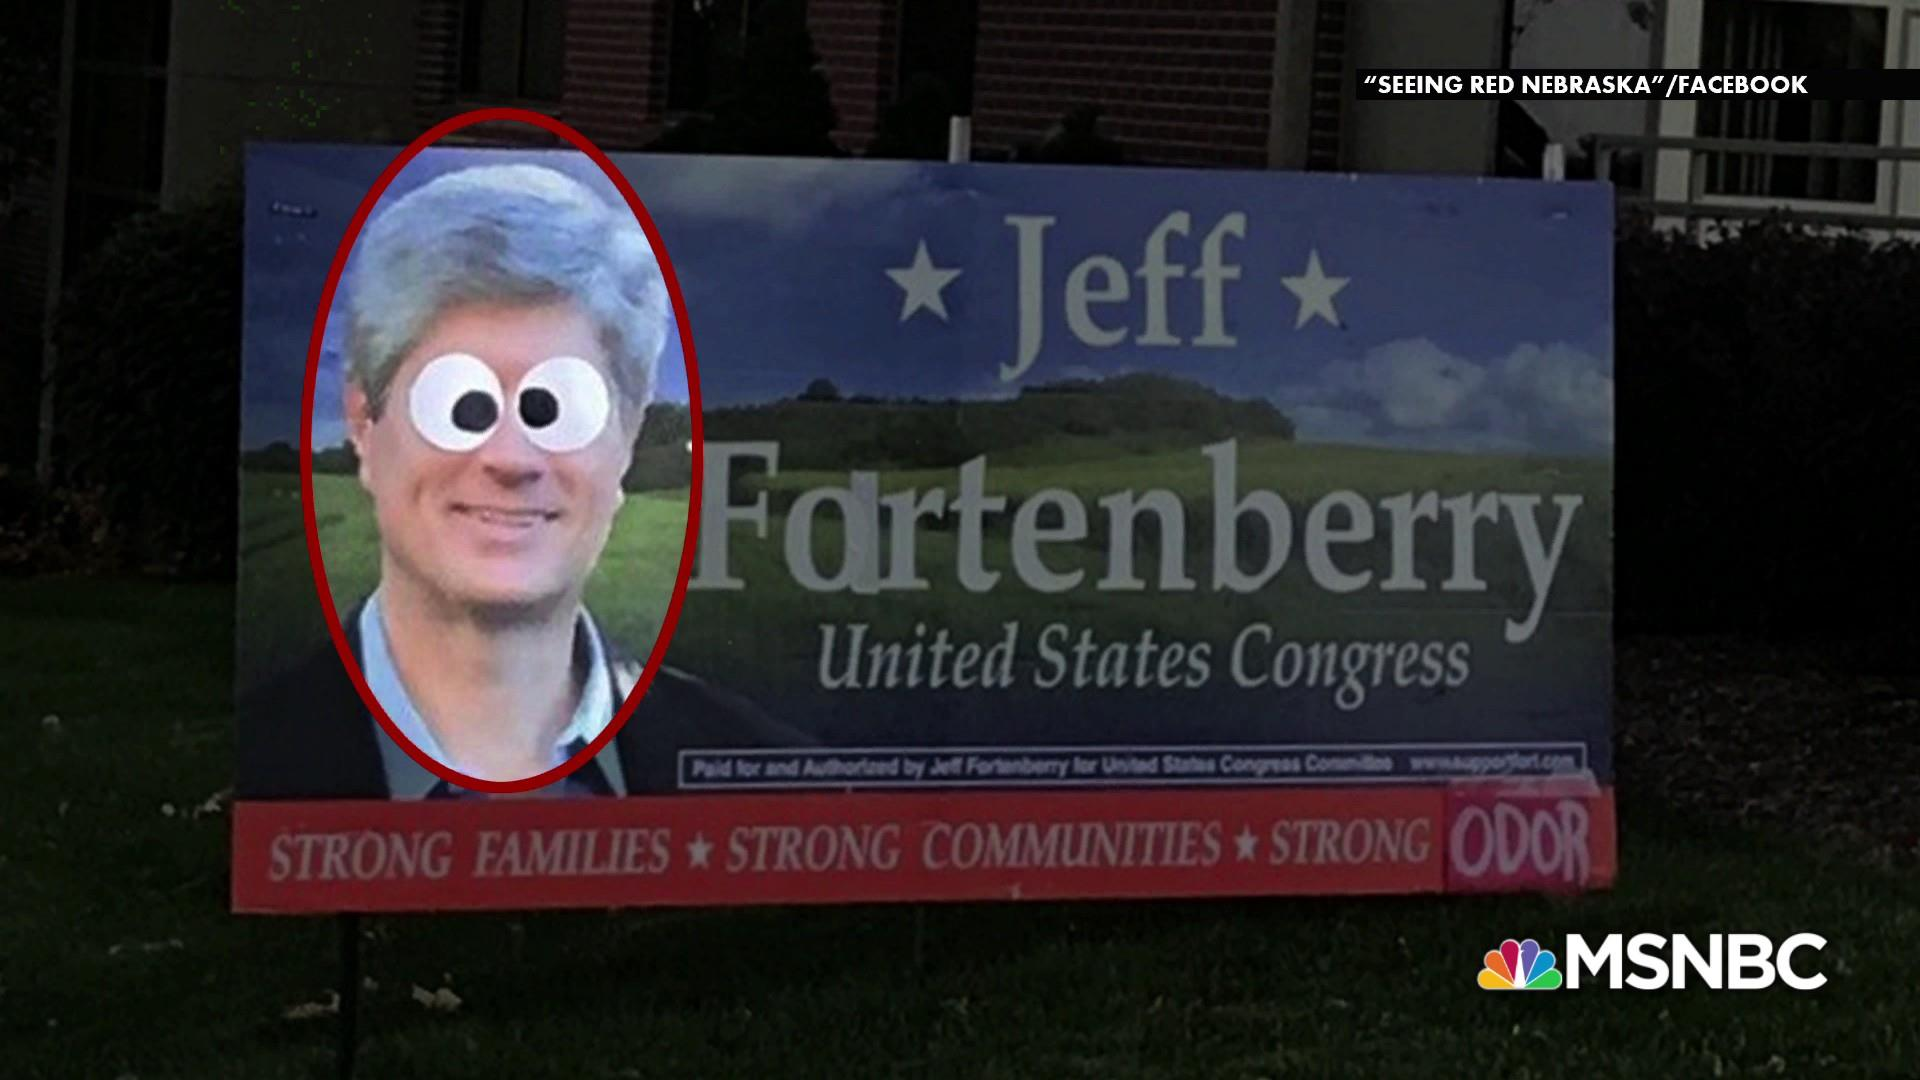 """Fartenberry"" yard sign prank causes quite a stir"